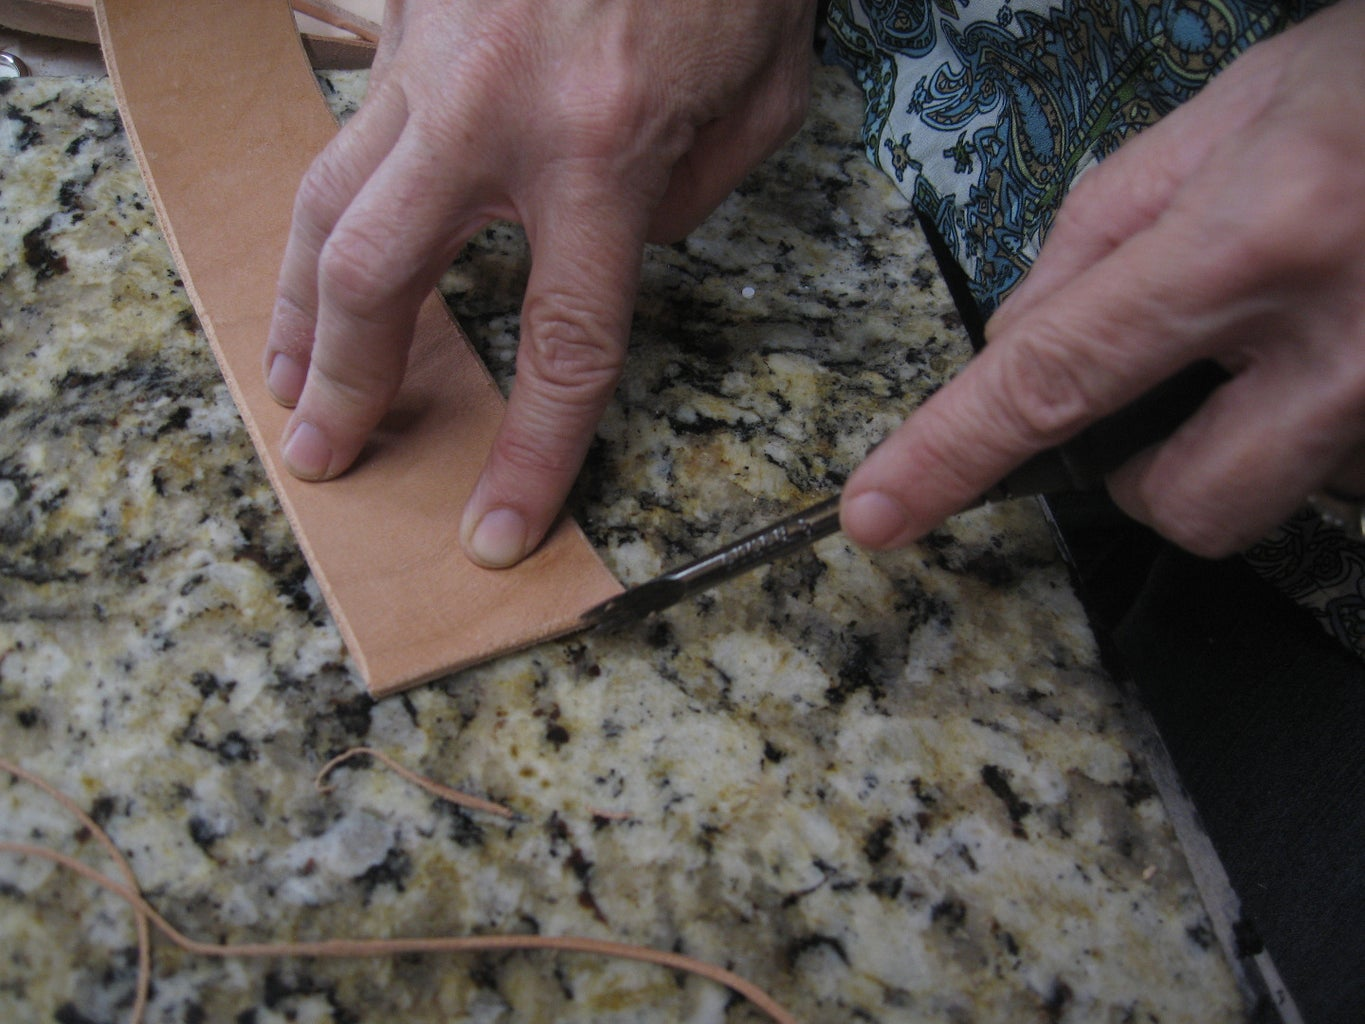 Edging, Grooving and Burnishing